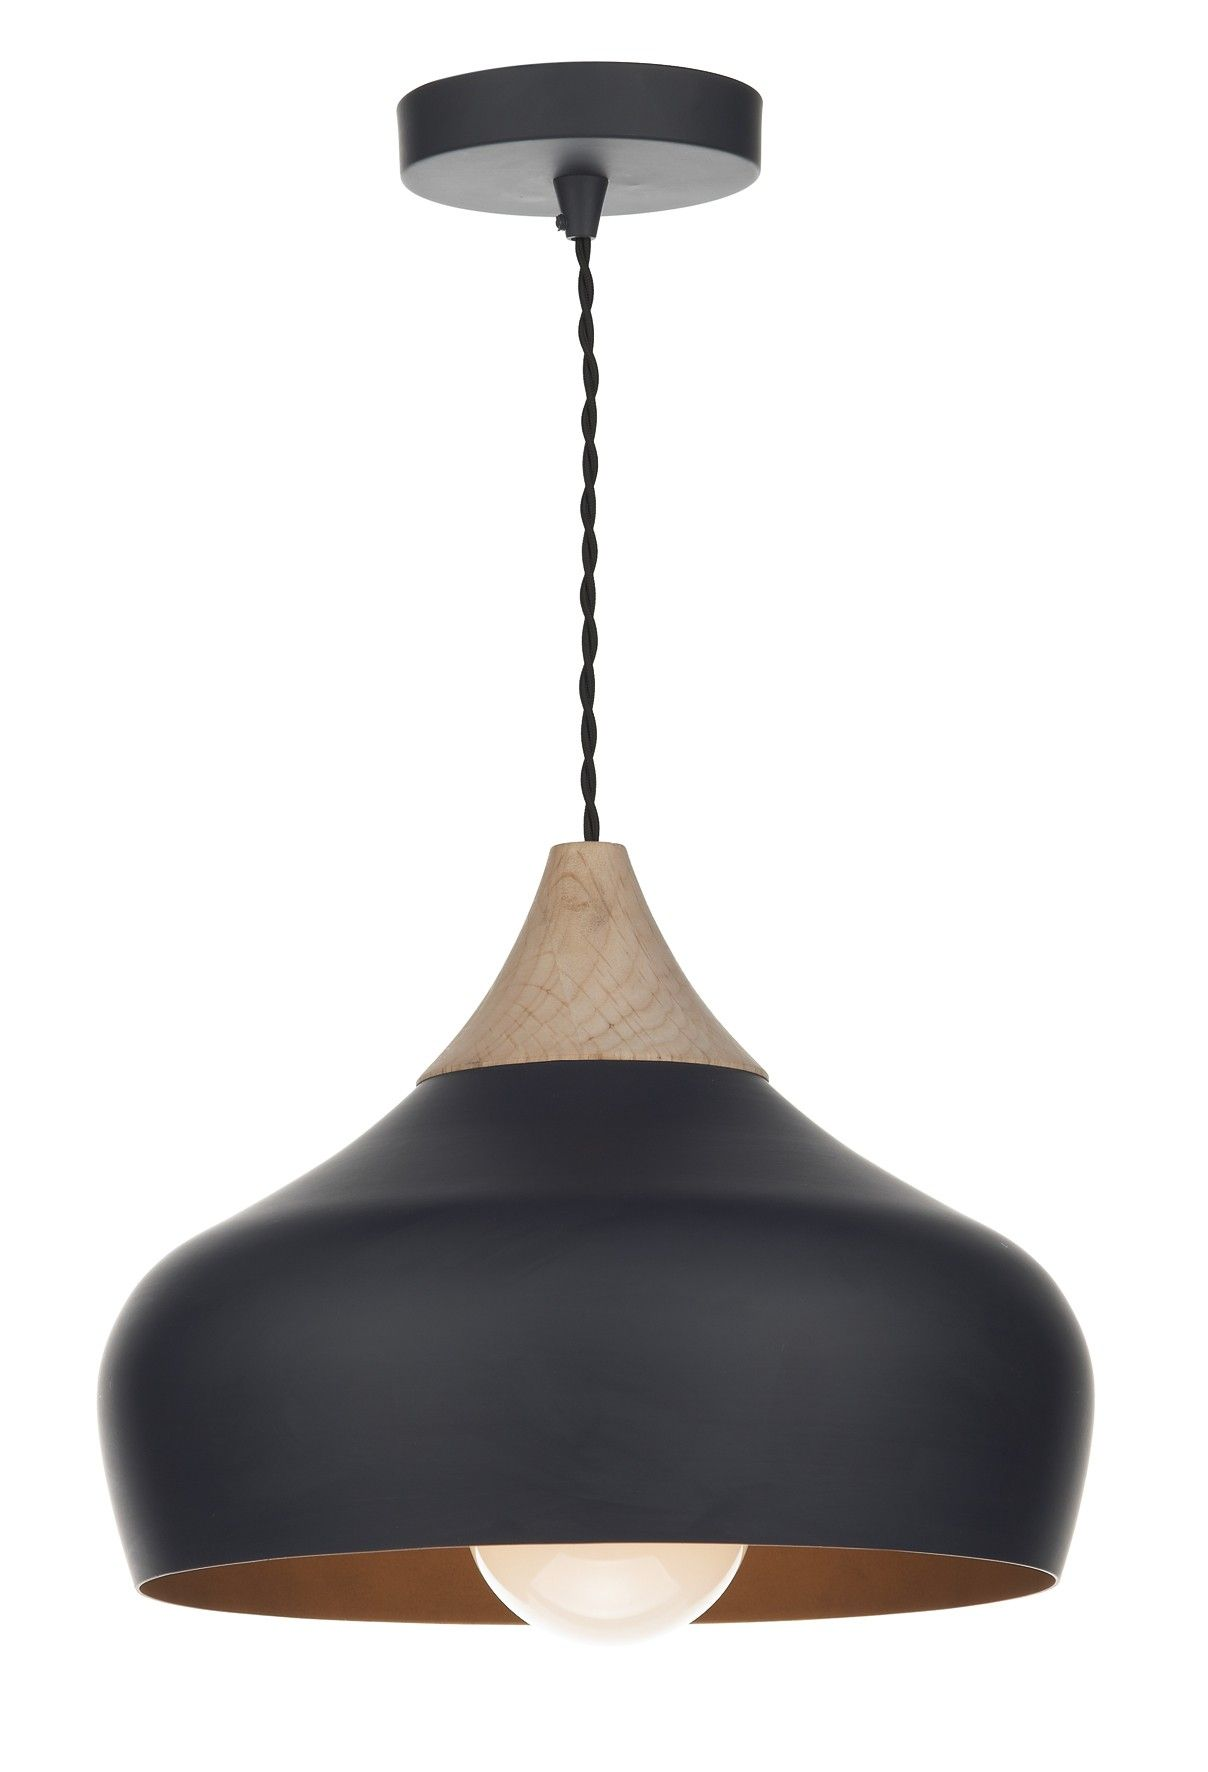 Suspension gaucho m tal noir et bois amenagement for Suspension bois